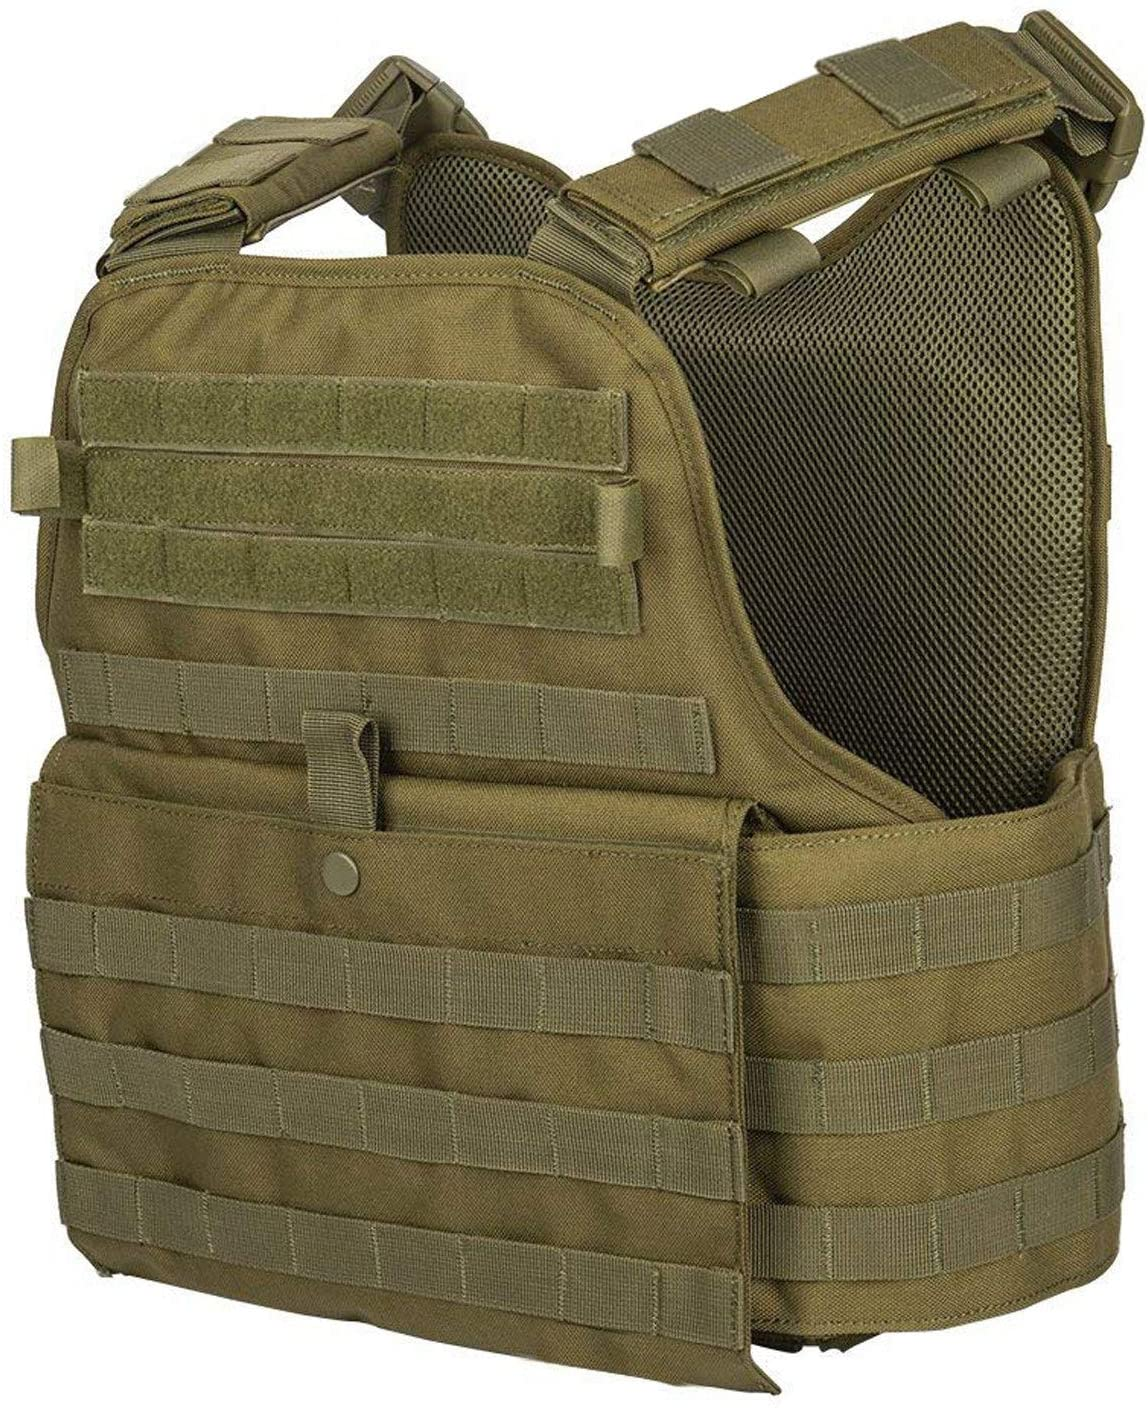 4-Gloryfire tactical plate carrier-1